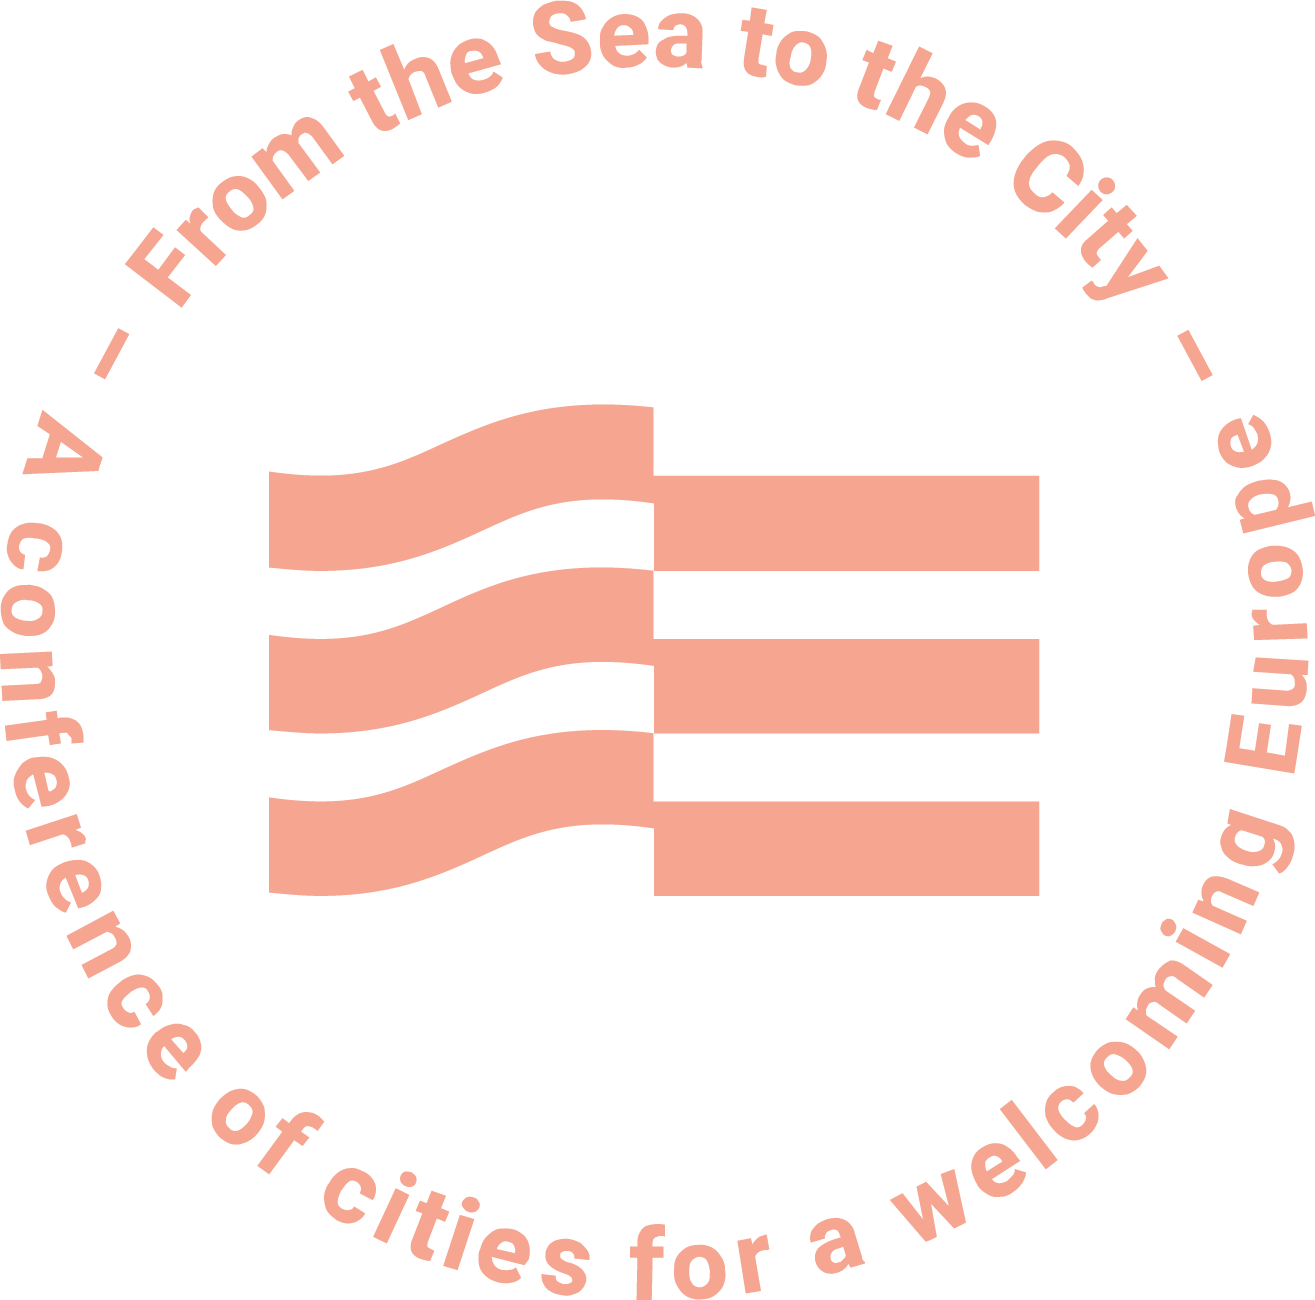 From Sea to City